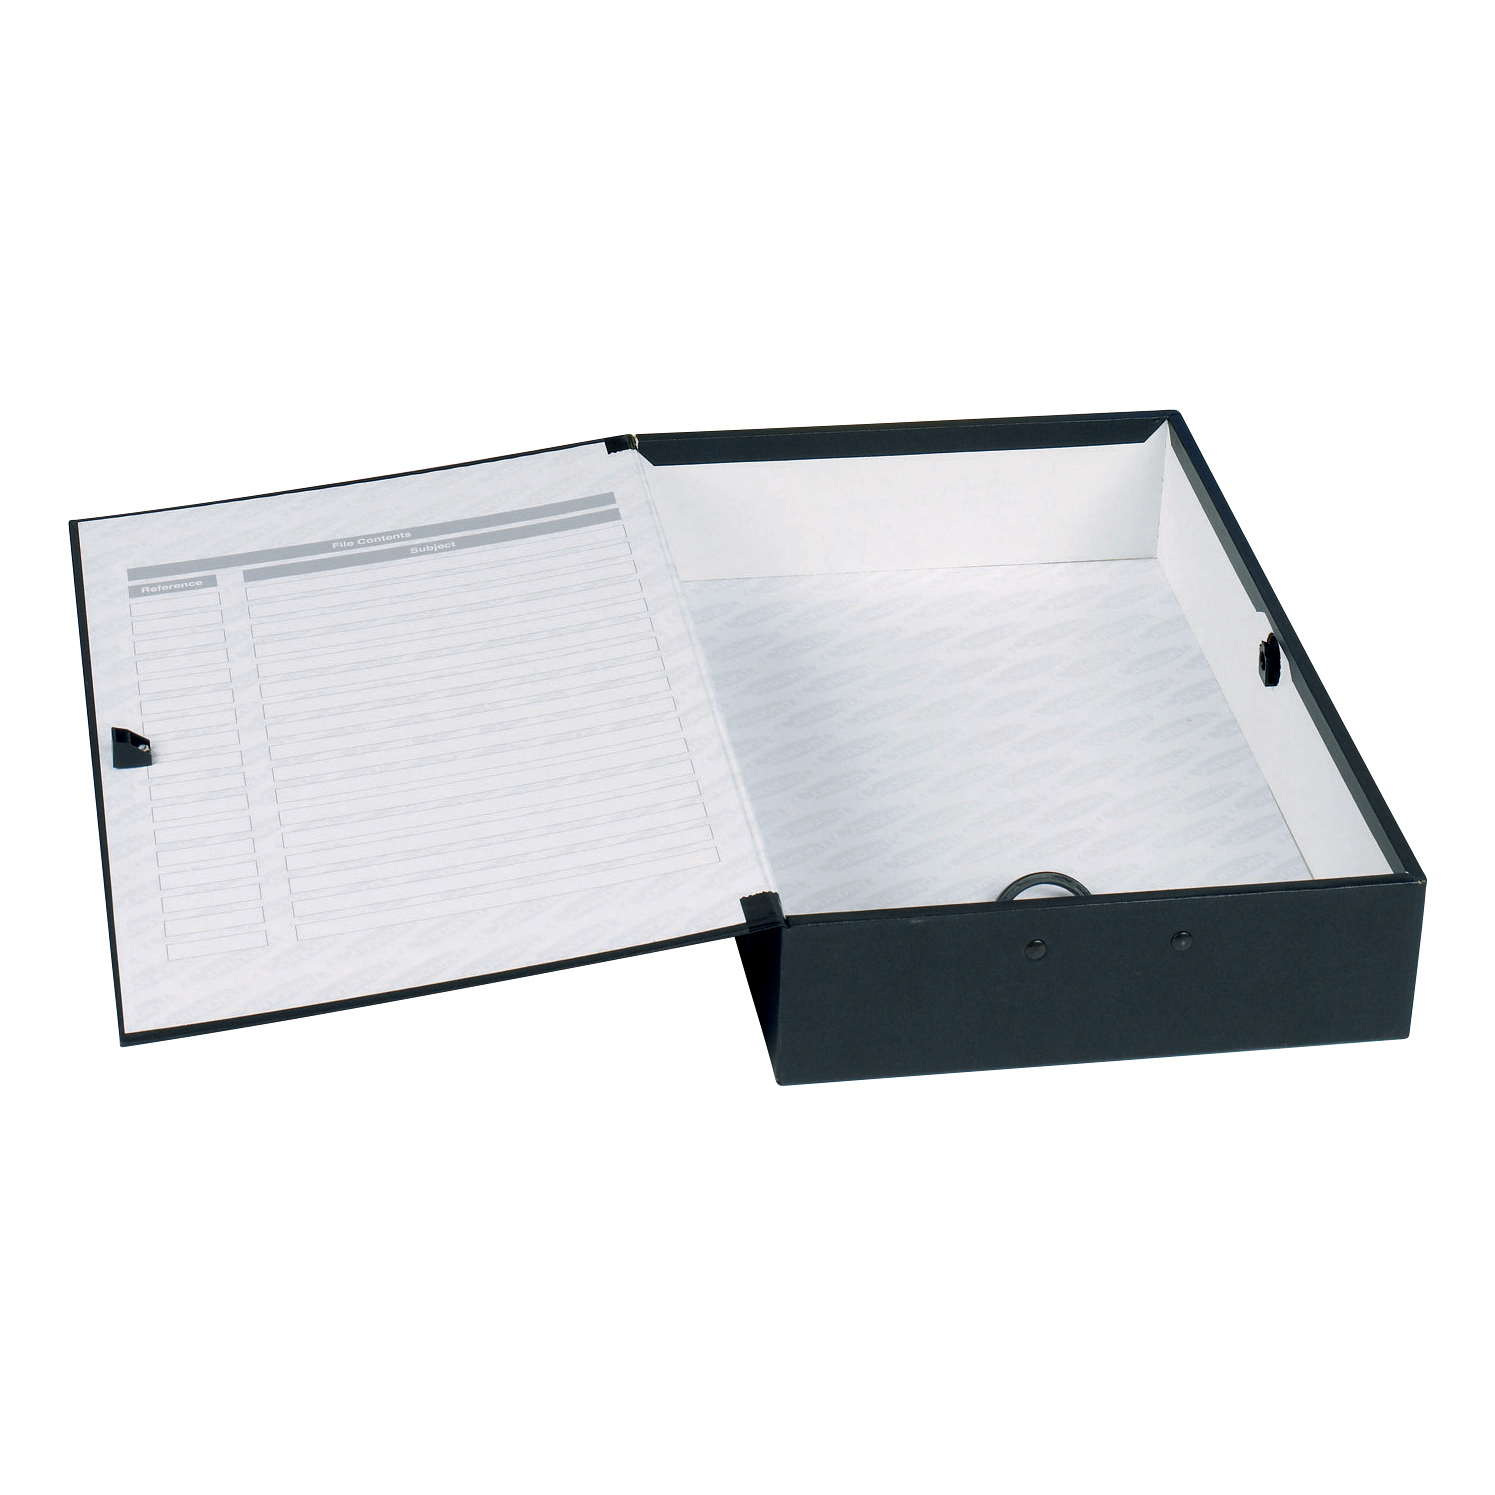 Box Files Concord Classic Box File 75mm Spine Foolscap Black Ref C1282 Pack 5